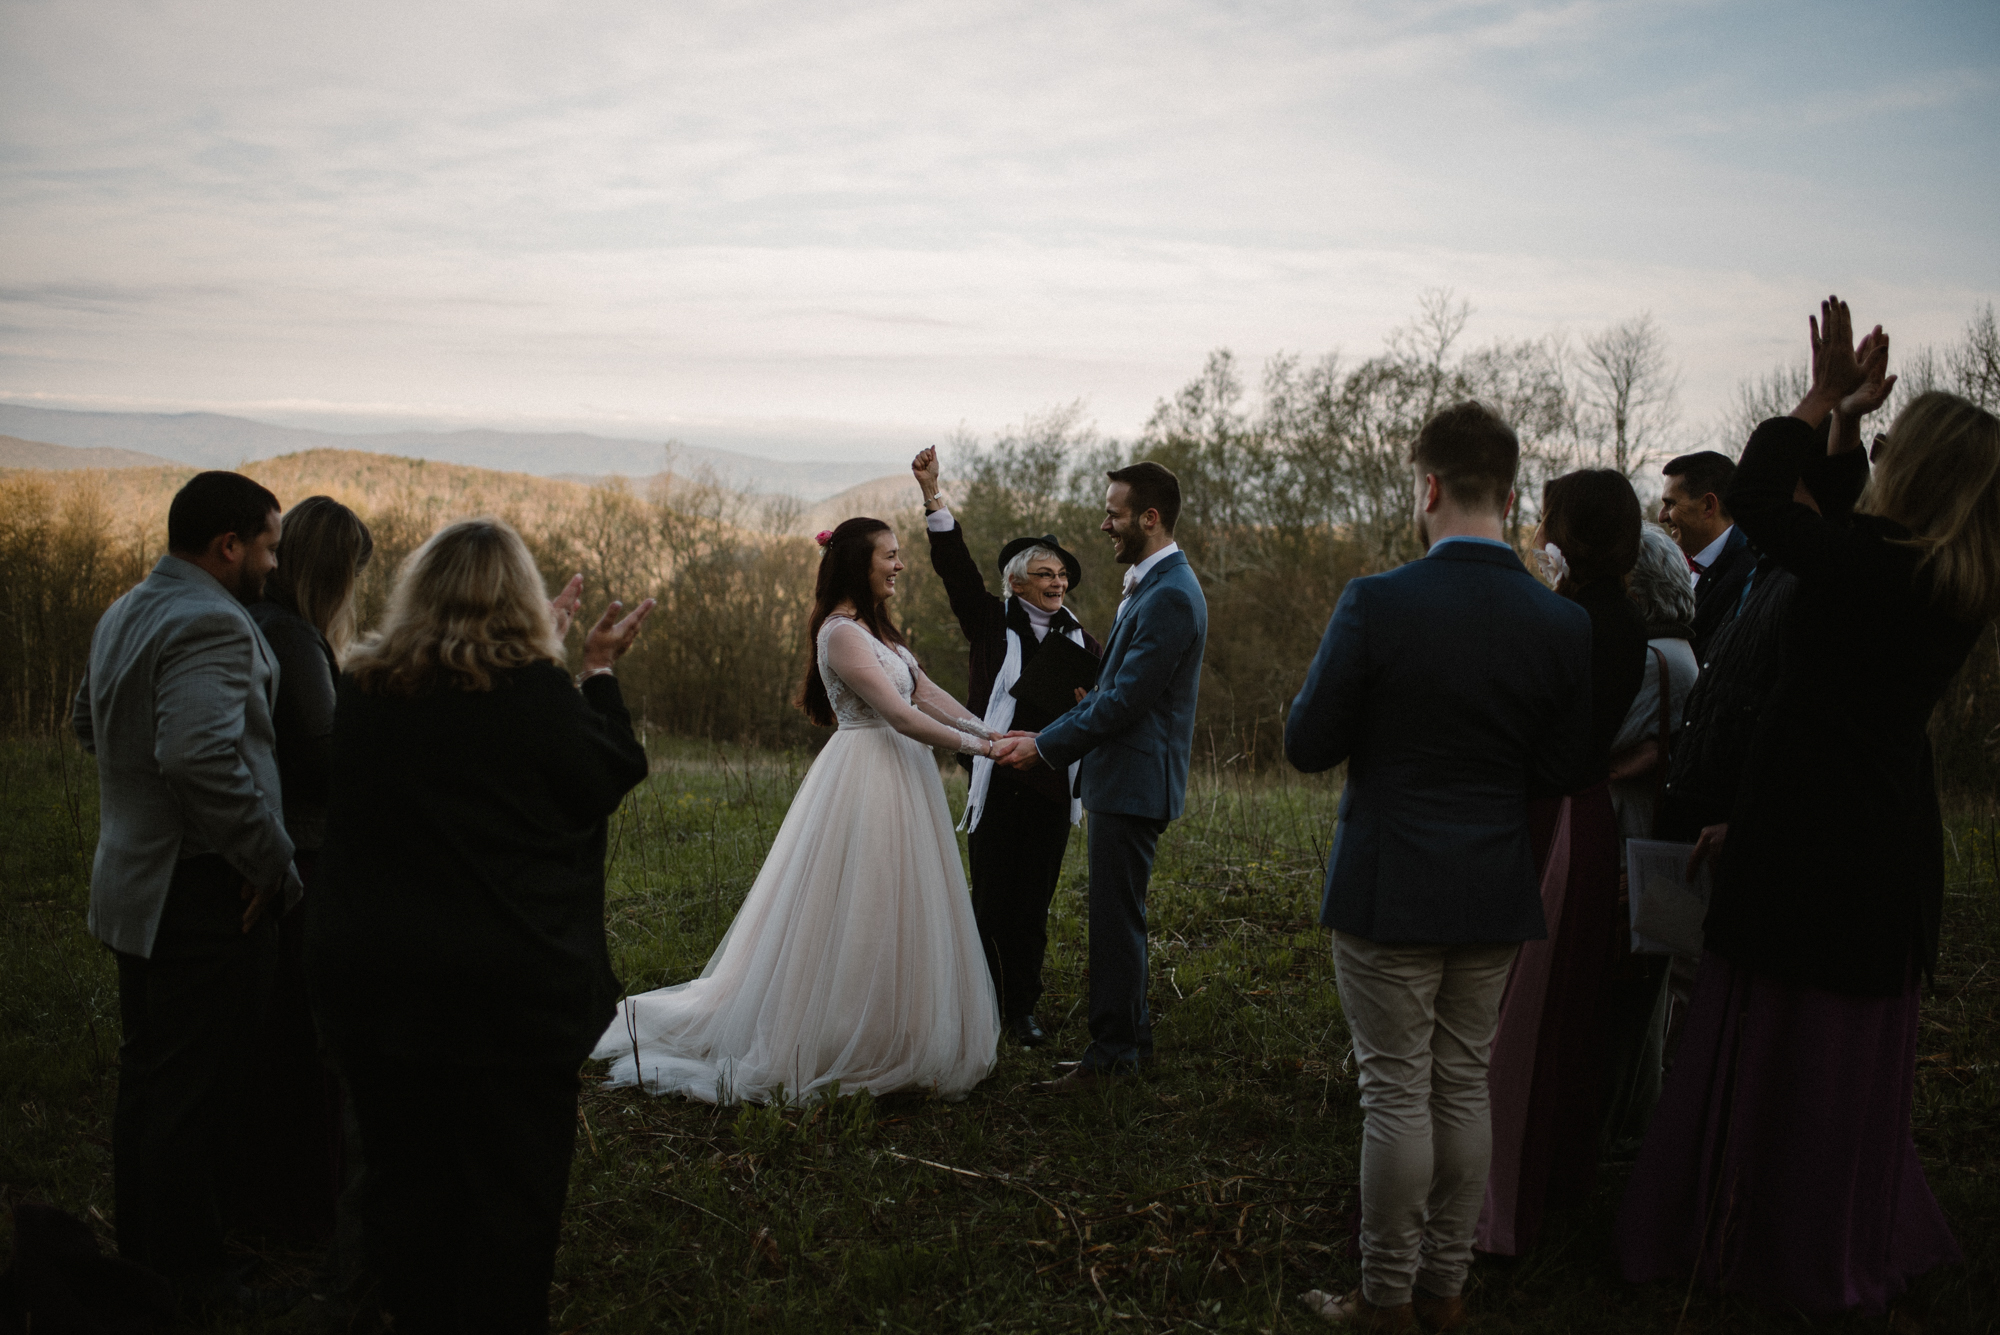 Paula and Andrew - Small Adventurous Wedding in Shenandoah National Park - Blue Ridge Mountain Wedding - White Sails Creative - Mountain Elopement_19.jpg